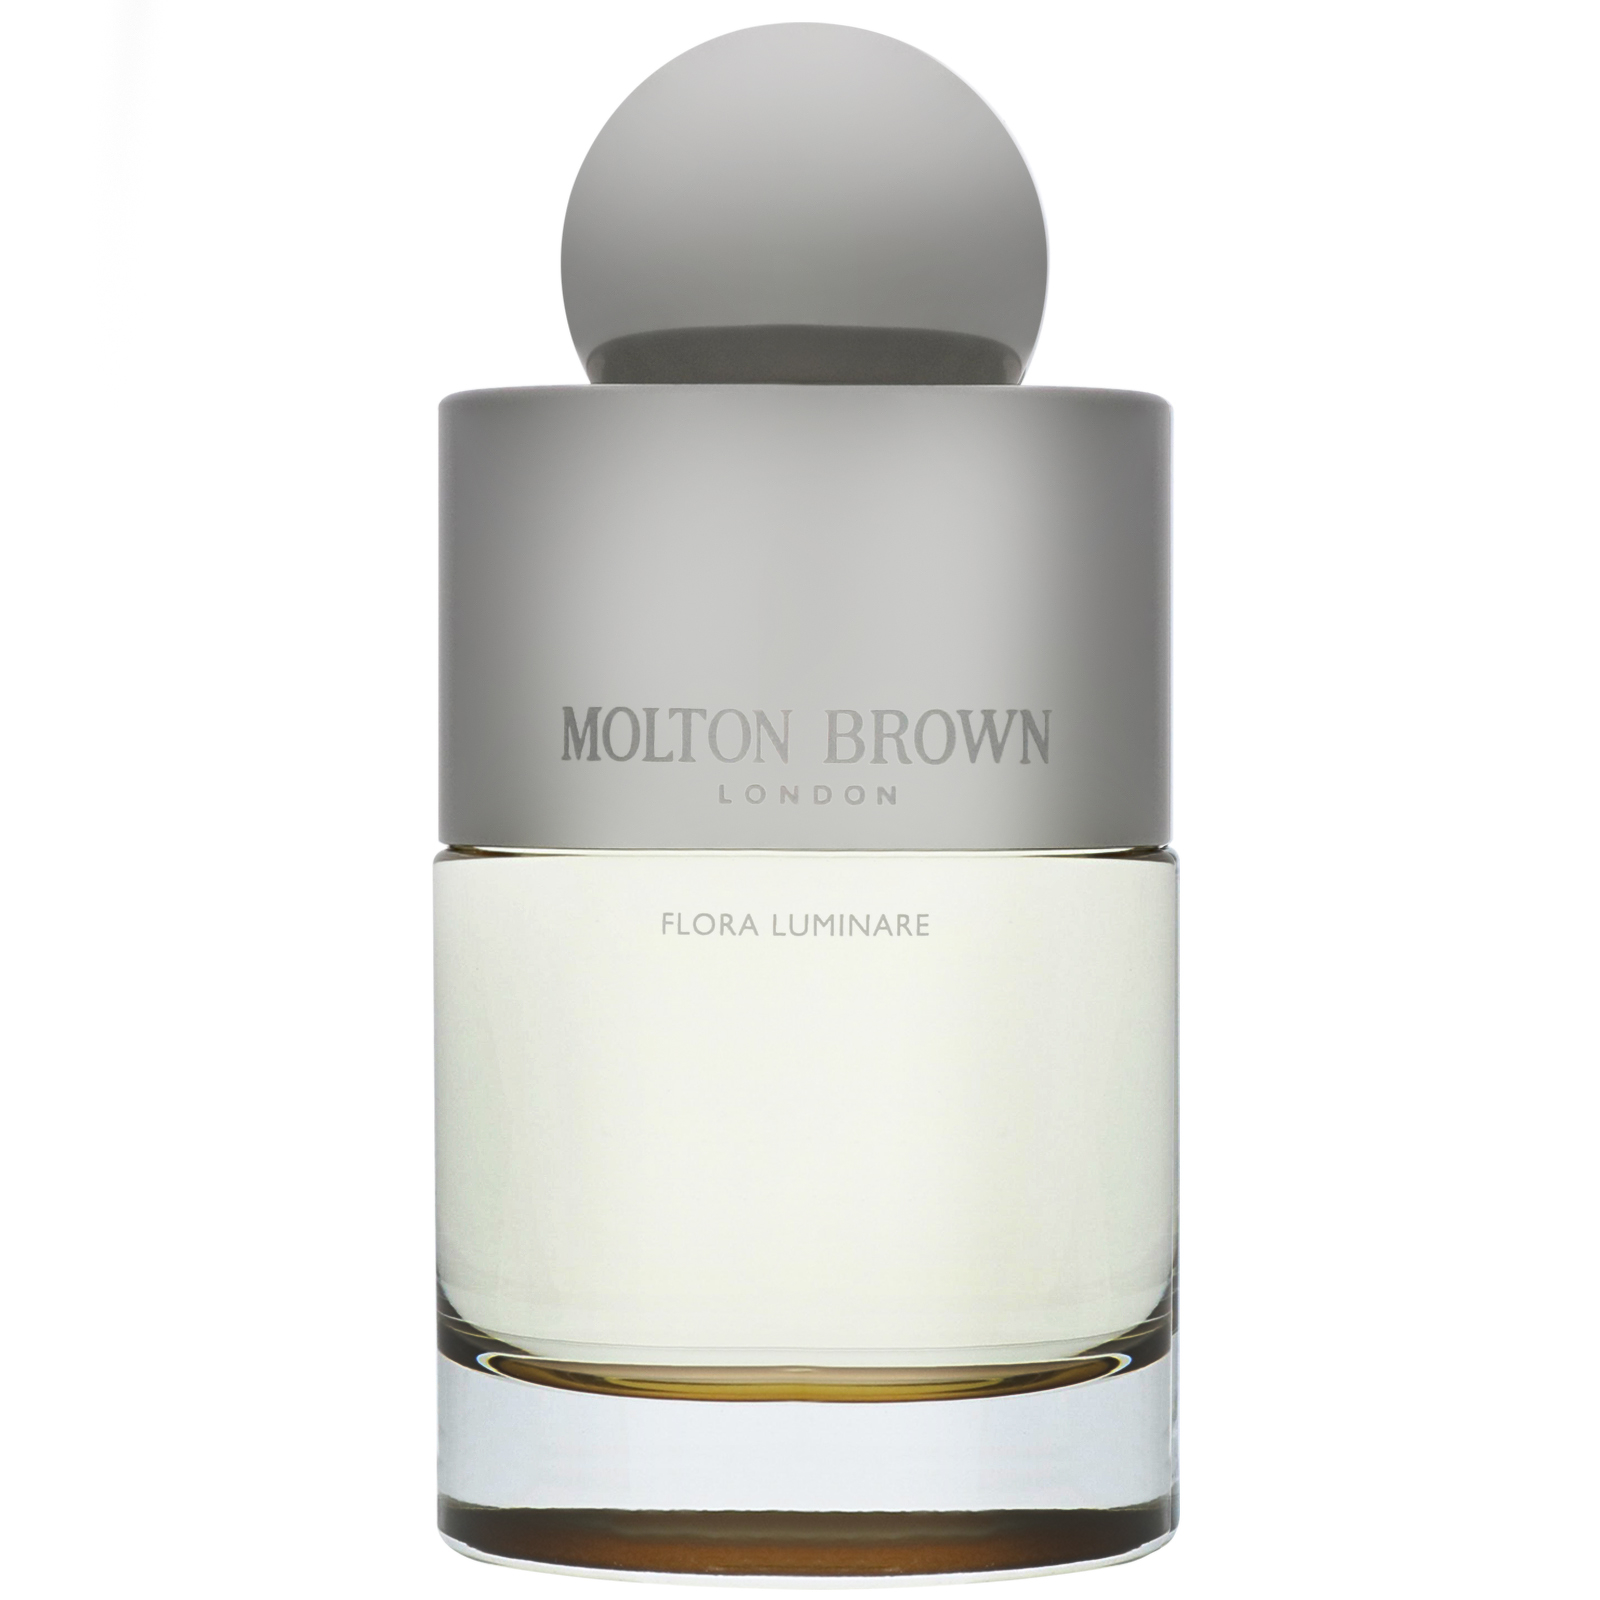 Molton Brown Flora Luminare Eau de Toilette Spray 100ml